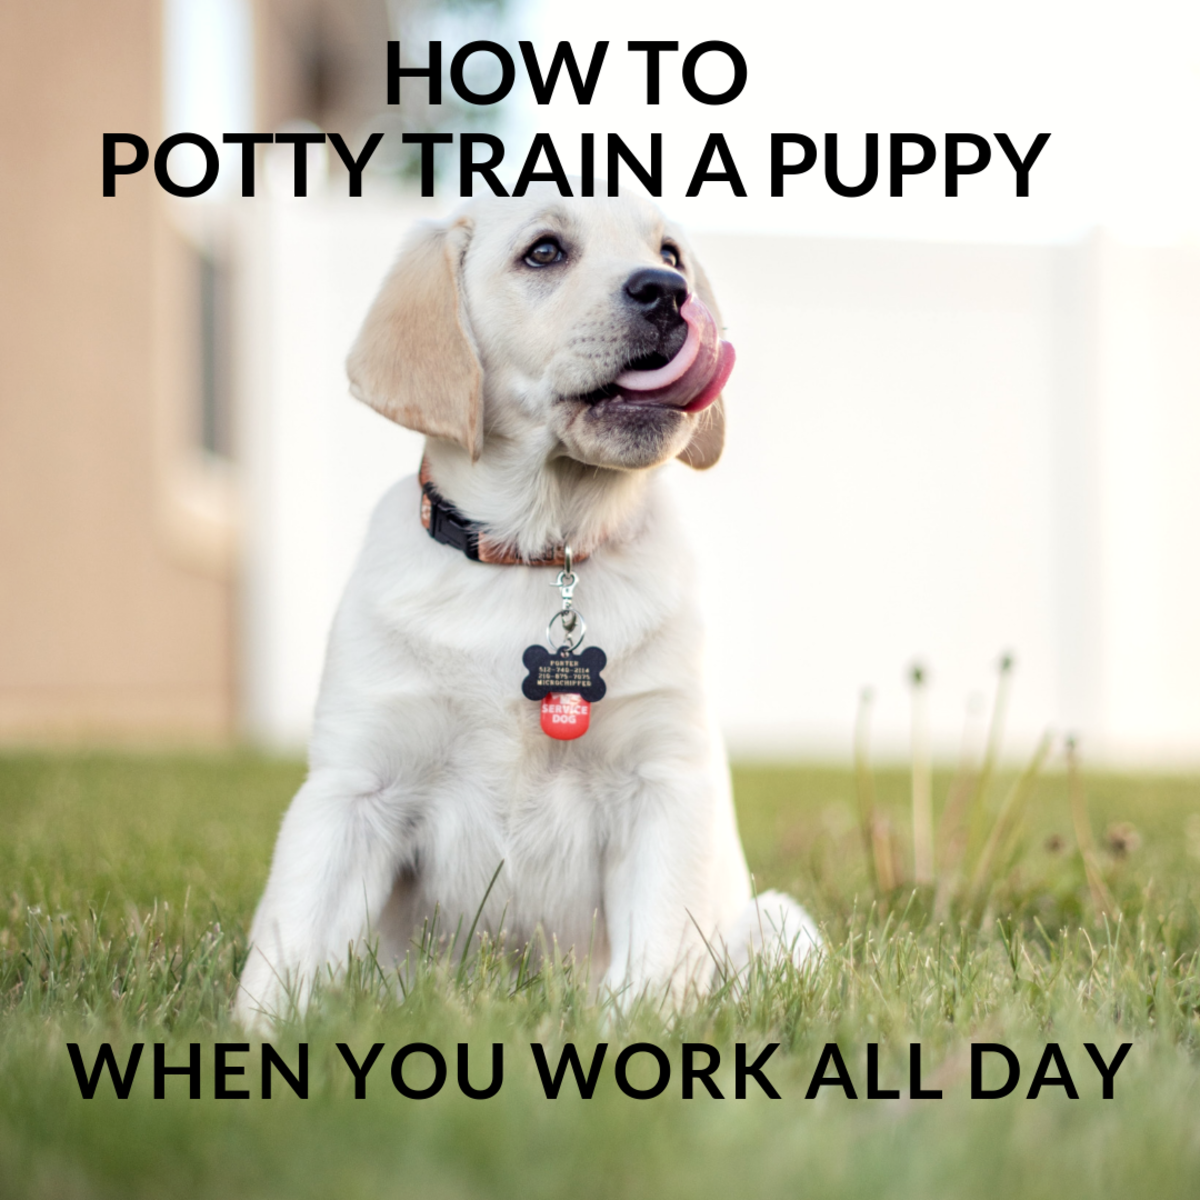 Howlong Can You Train Your Dog In A Day